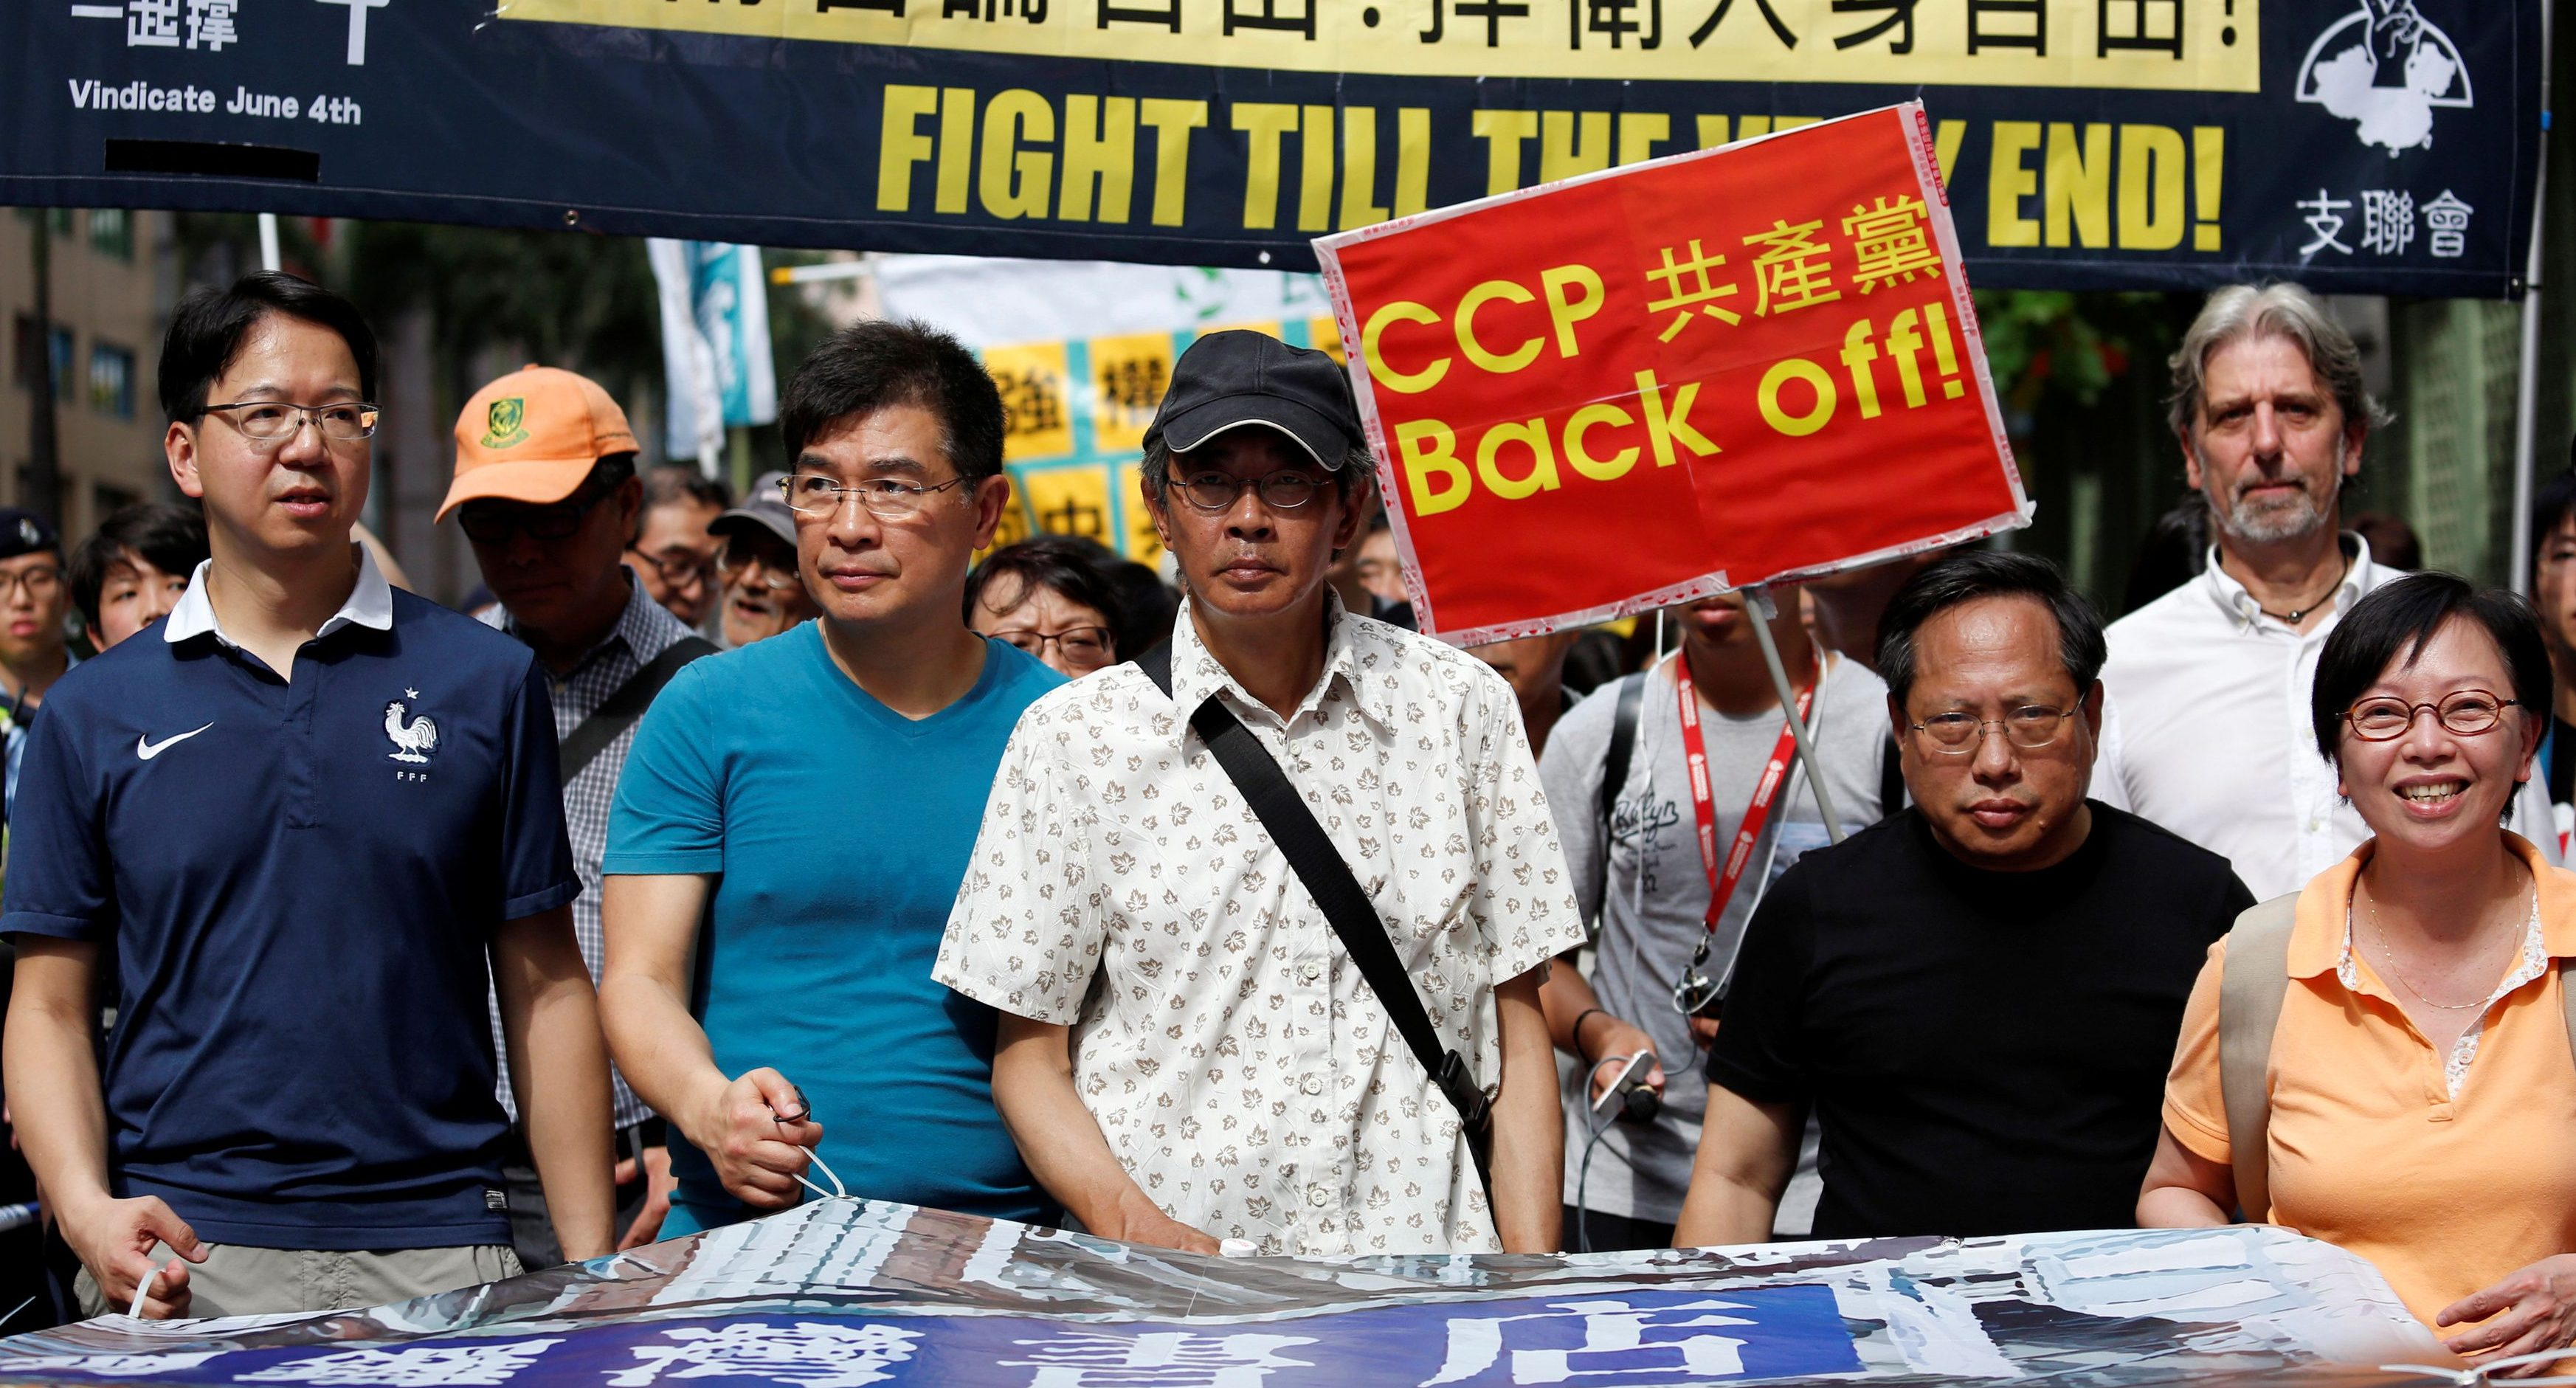 Bookseller Lam Wing-kee (C) takes part in a protest march with pro-democracy lawmakers and supporters in Hong Kong, China June 18, 2016.      REUTERS/Bobby Yip - RTX2GVXG